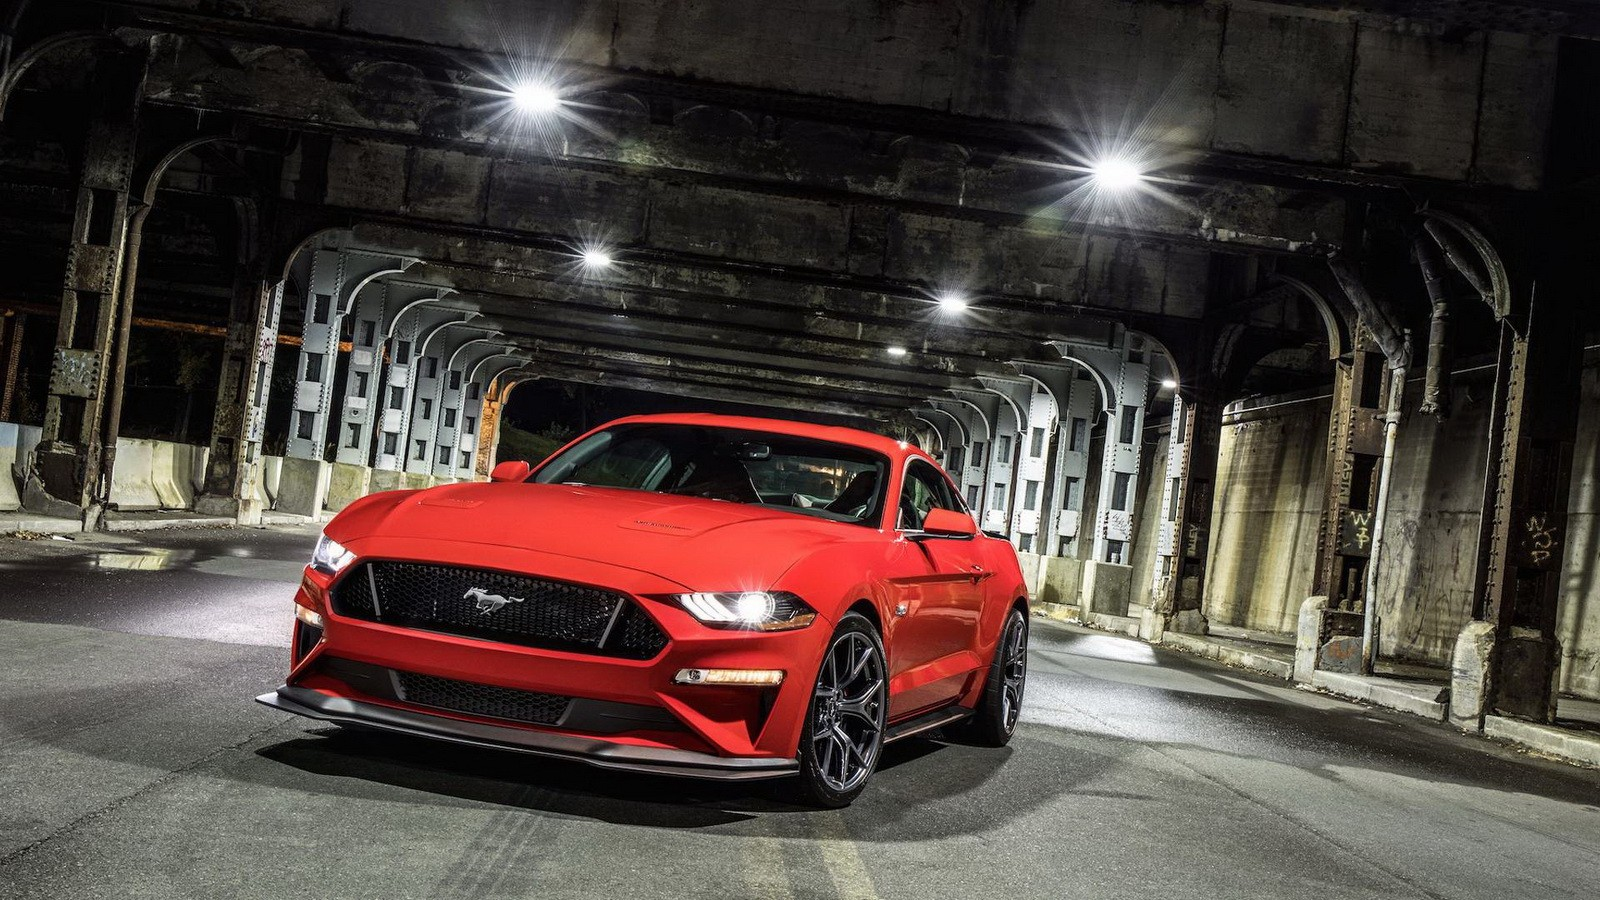 2018 Ford Mustang GT Features Upgraded MT82 Manual Transmission